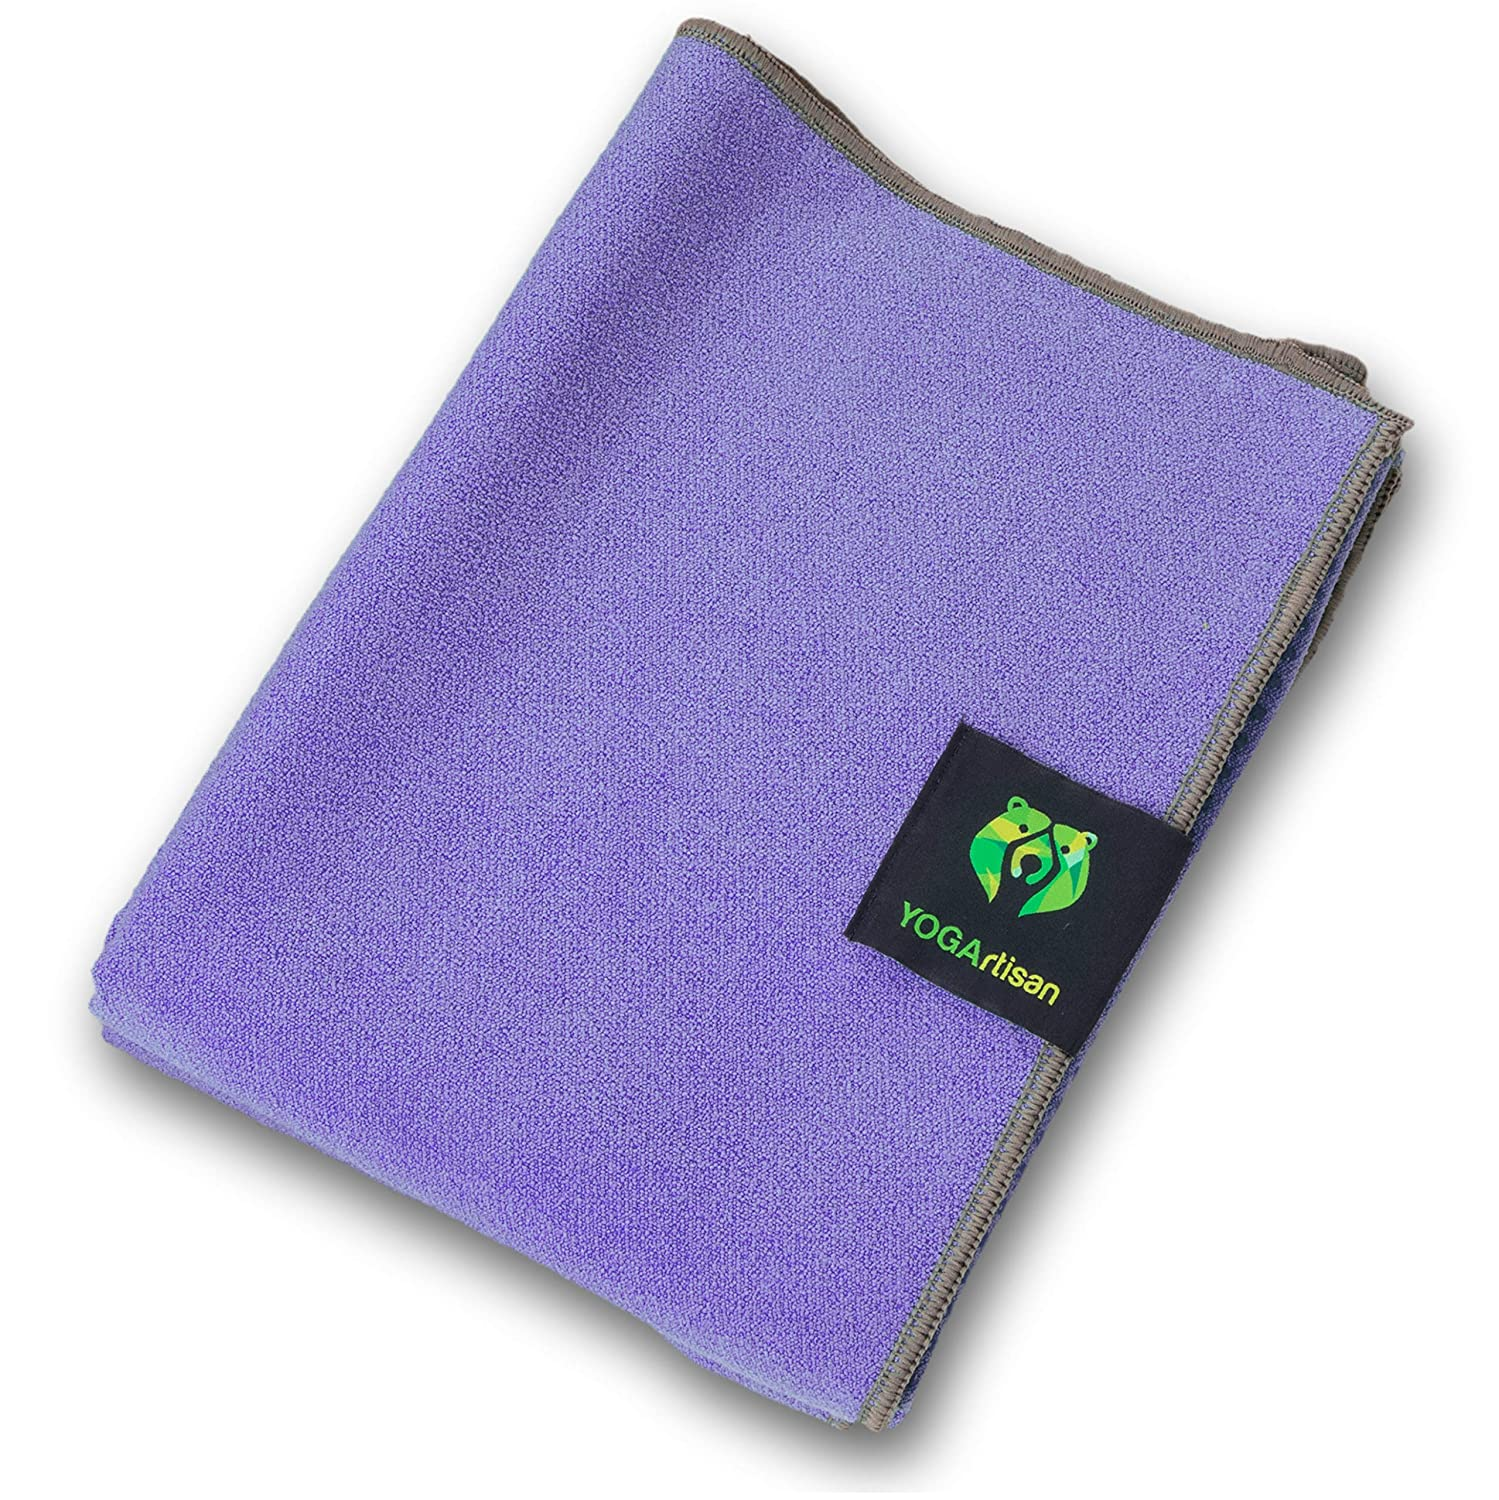 YOGArtisan Hot Yoga Towel, Thick Microfiber, Grippy Non Slip Mat Covers for Bikram, Stretching, Meditation